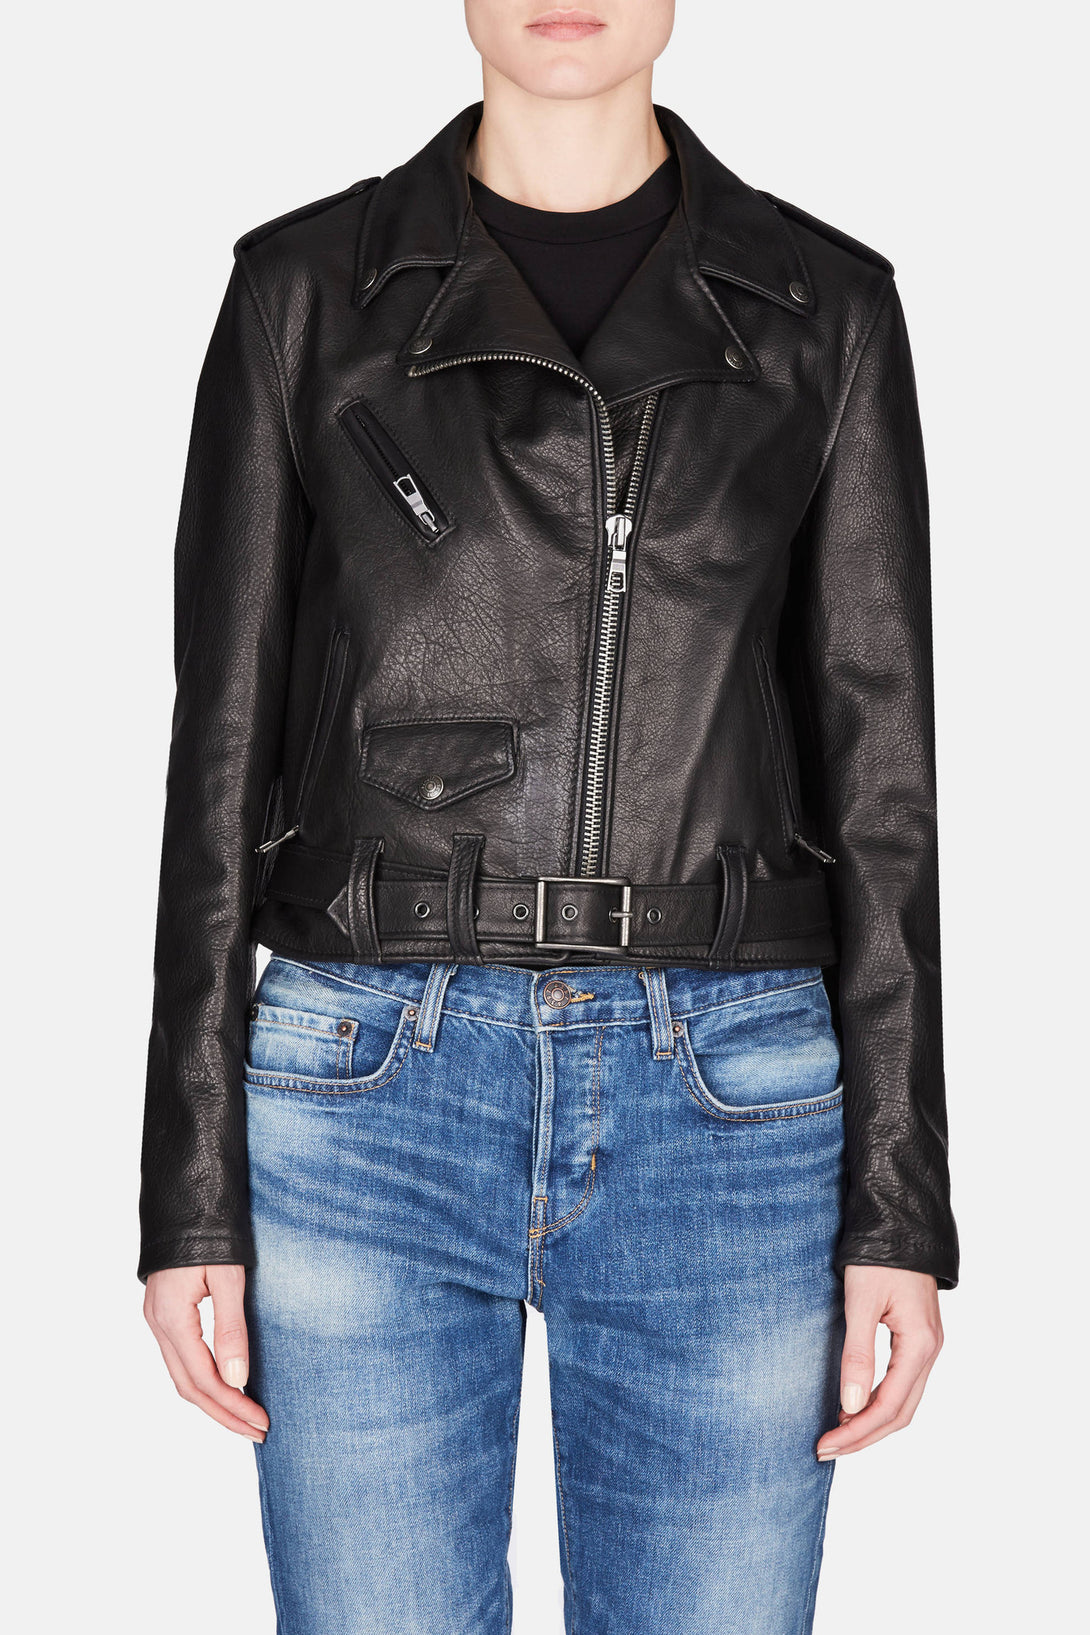 Schott x The Line Leather Jacket - Black